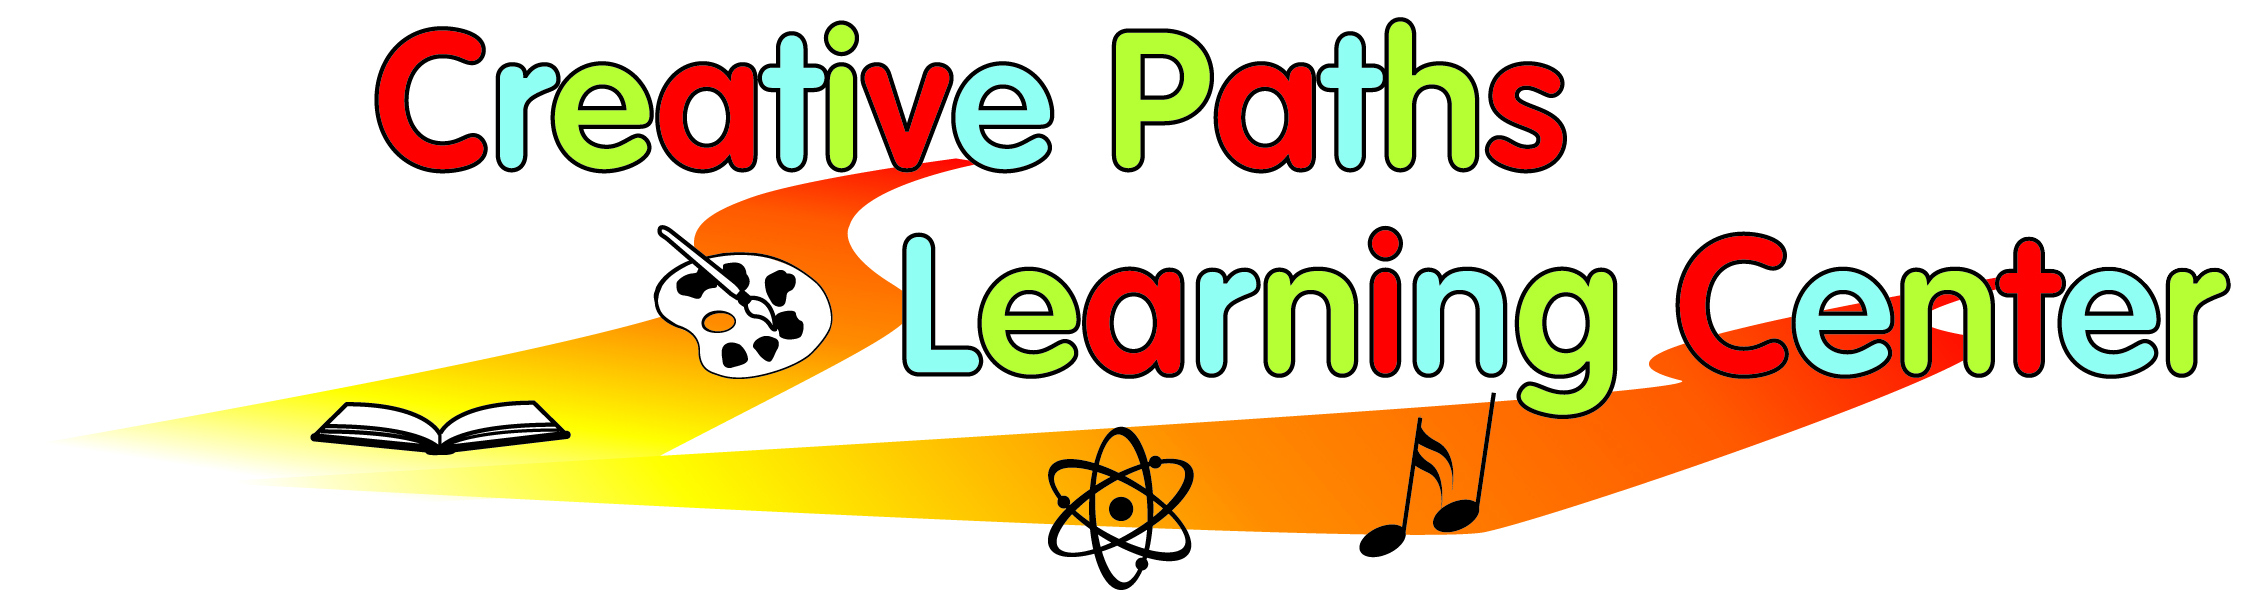 Creative Paths Learning Center